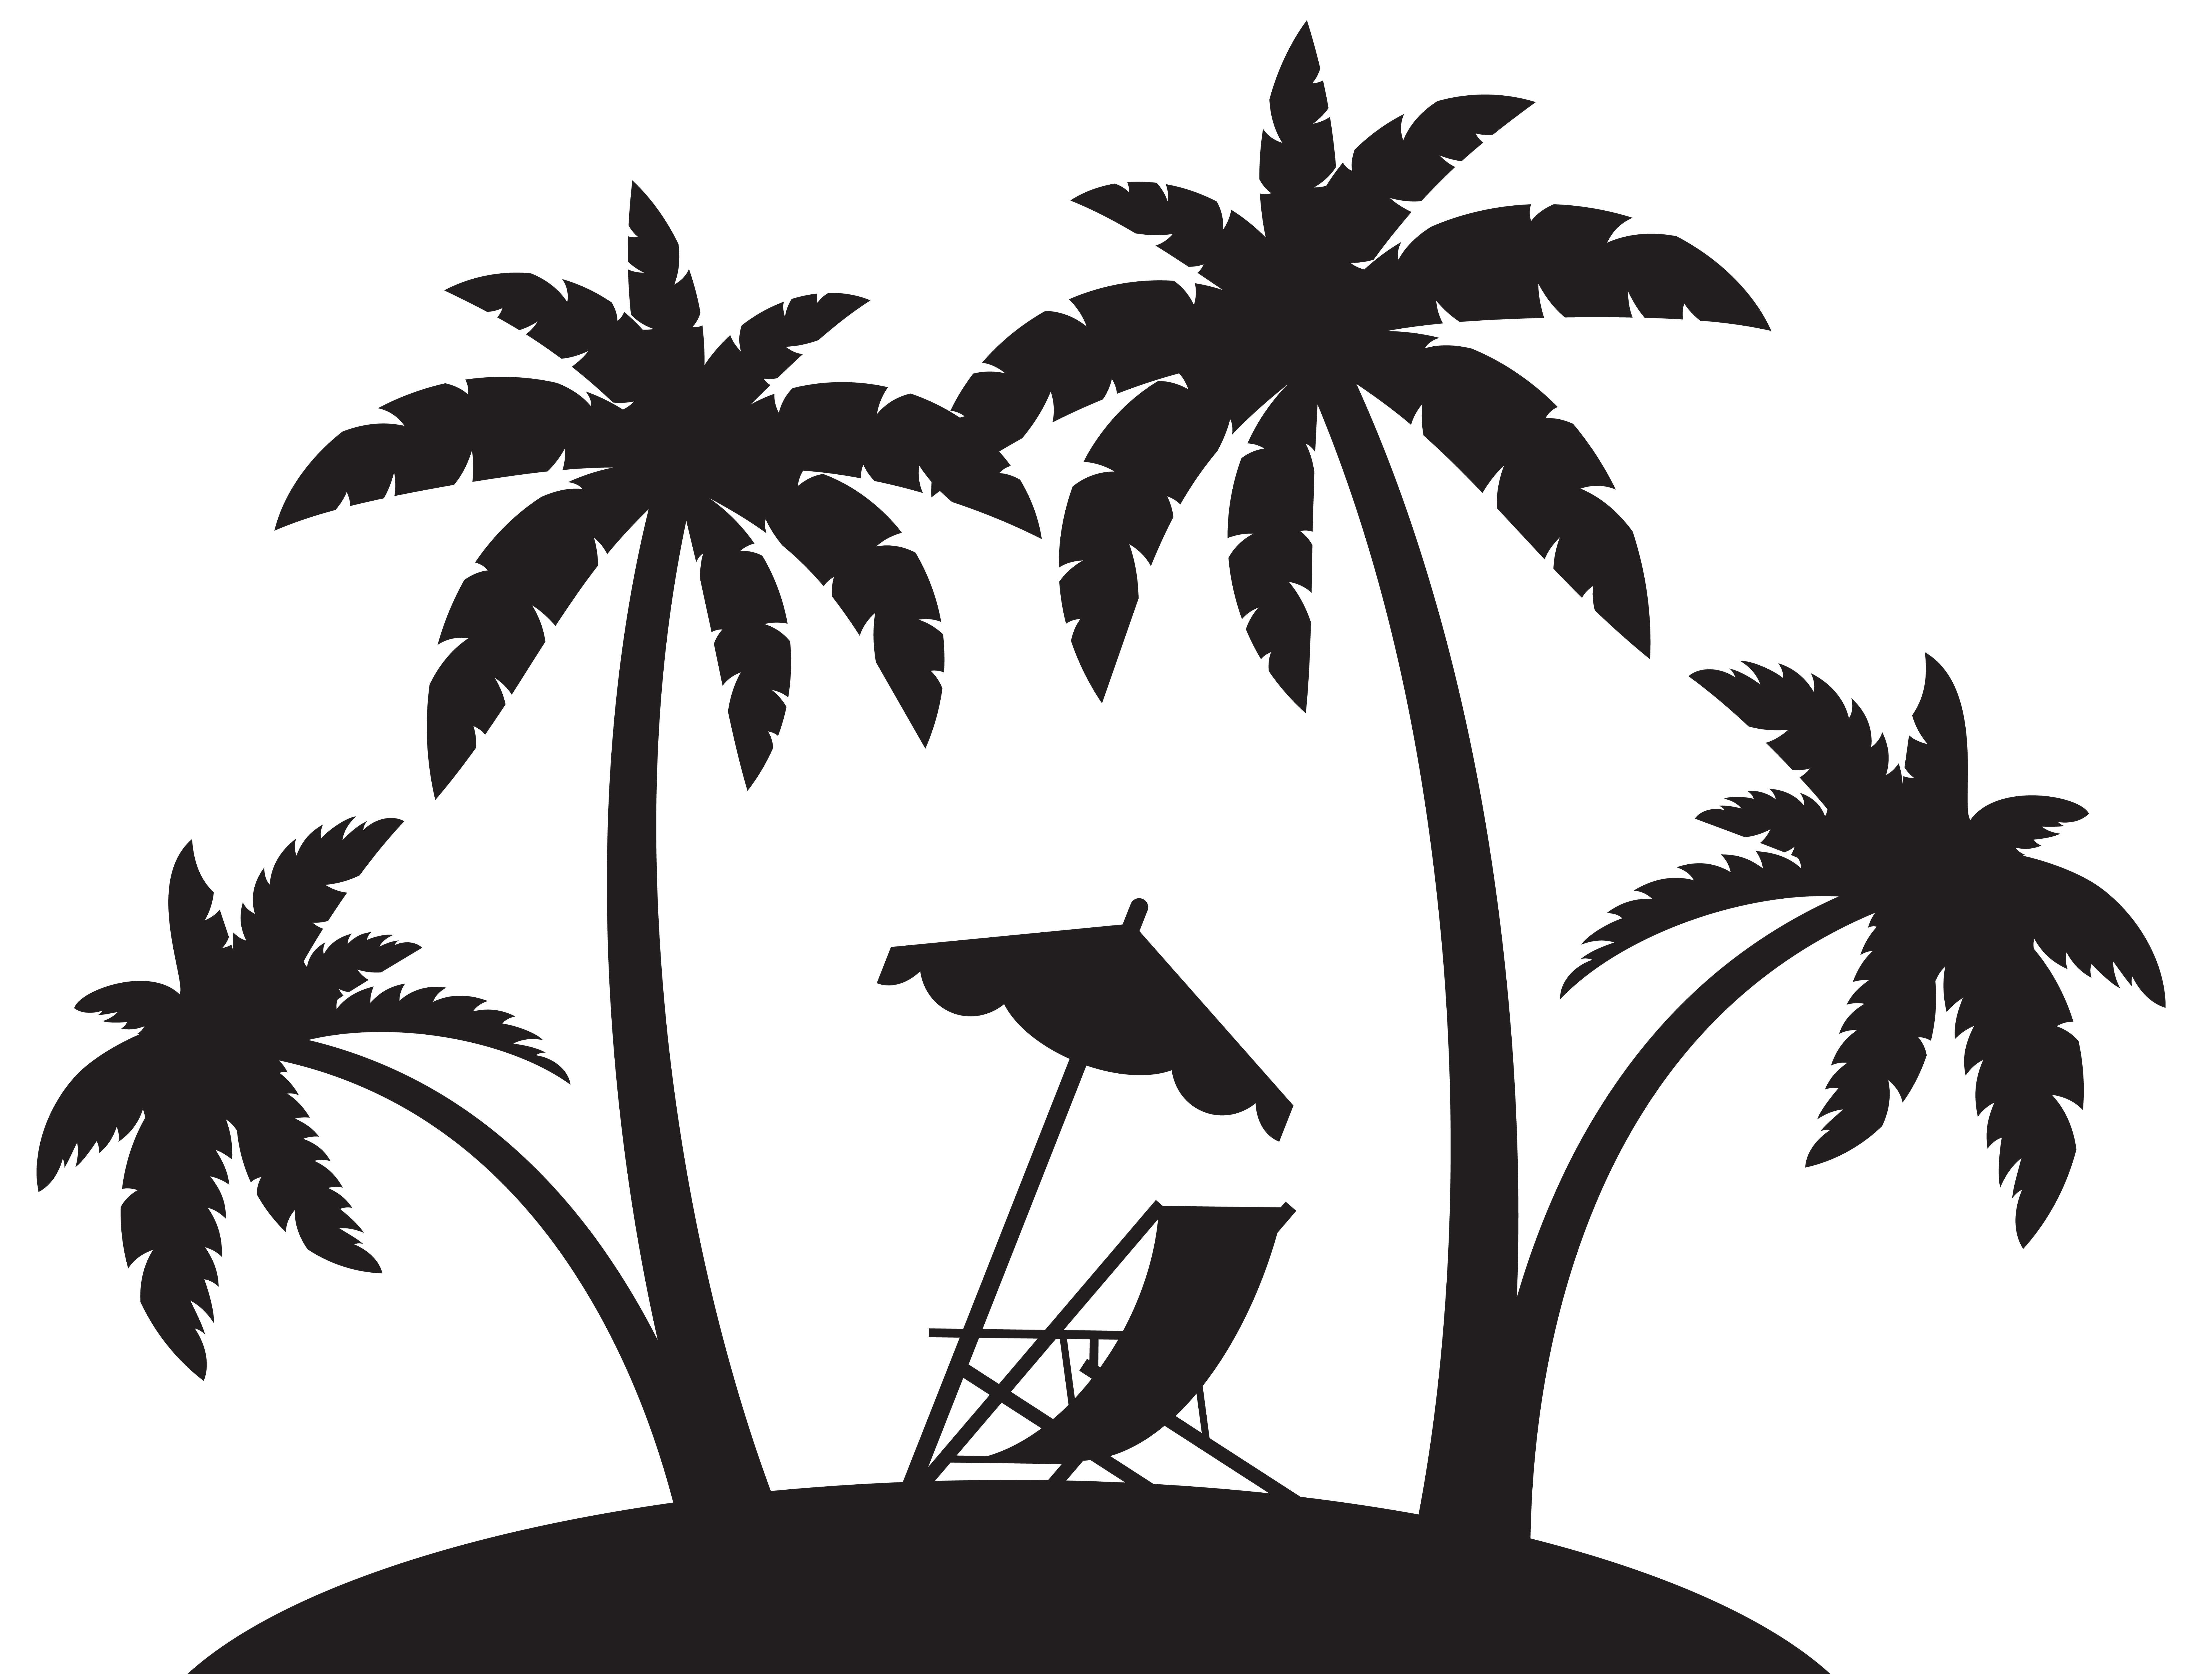 http://getdrawings.com/img/chair-silhouette-21.png